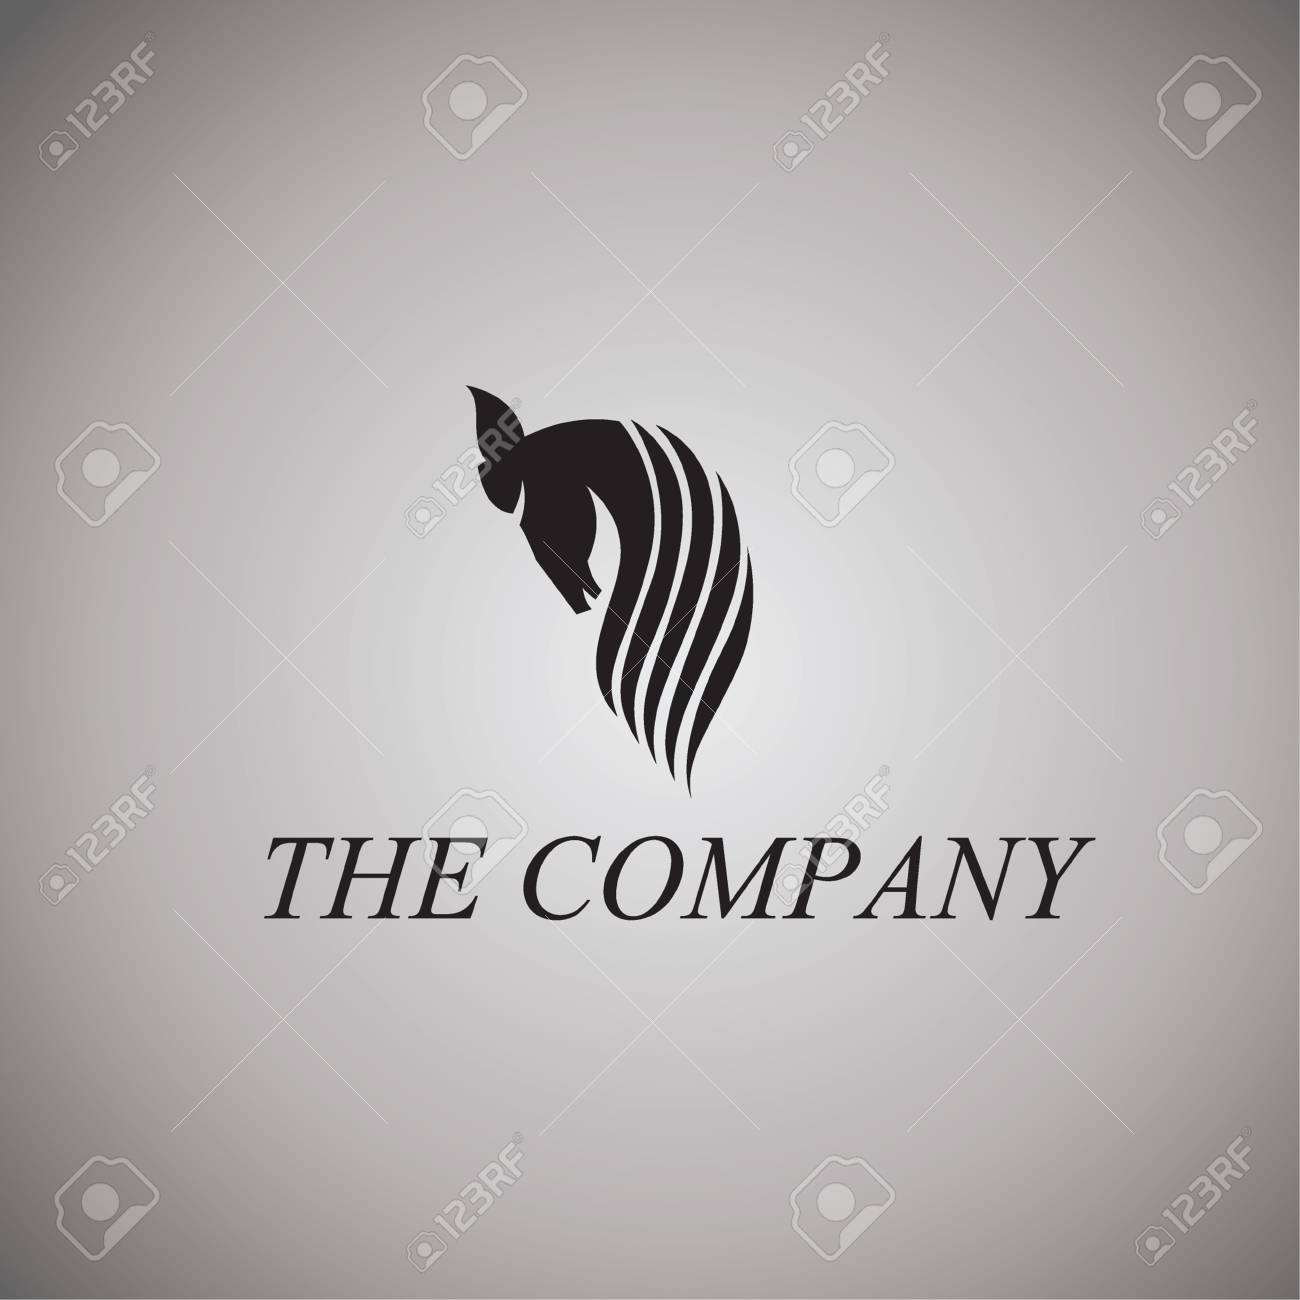 Horse Logo Ideas Design Vector Illustration On Background Royalty Free Cliparts Vectors And Stock Illustration Image 67625456